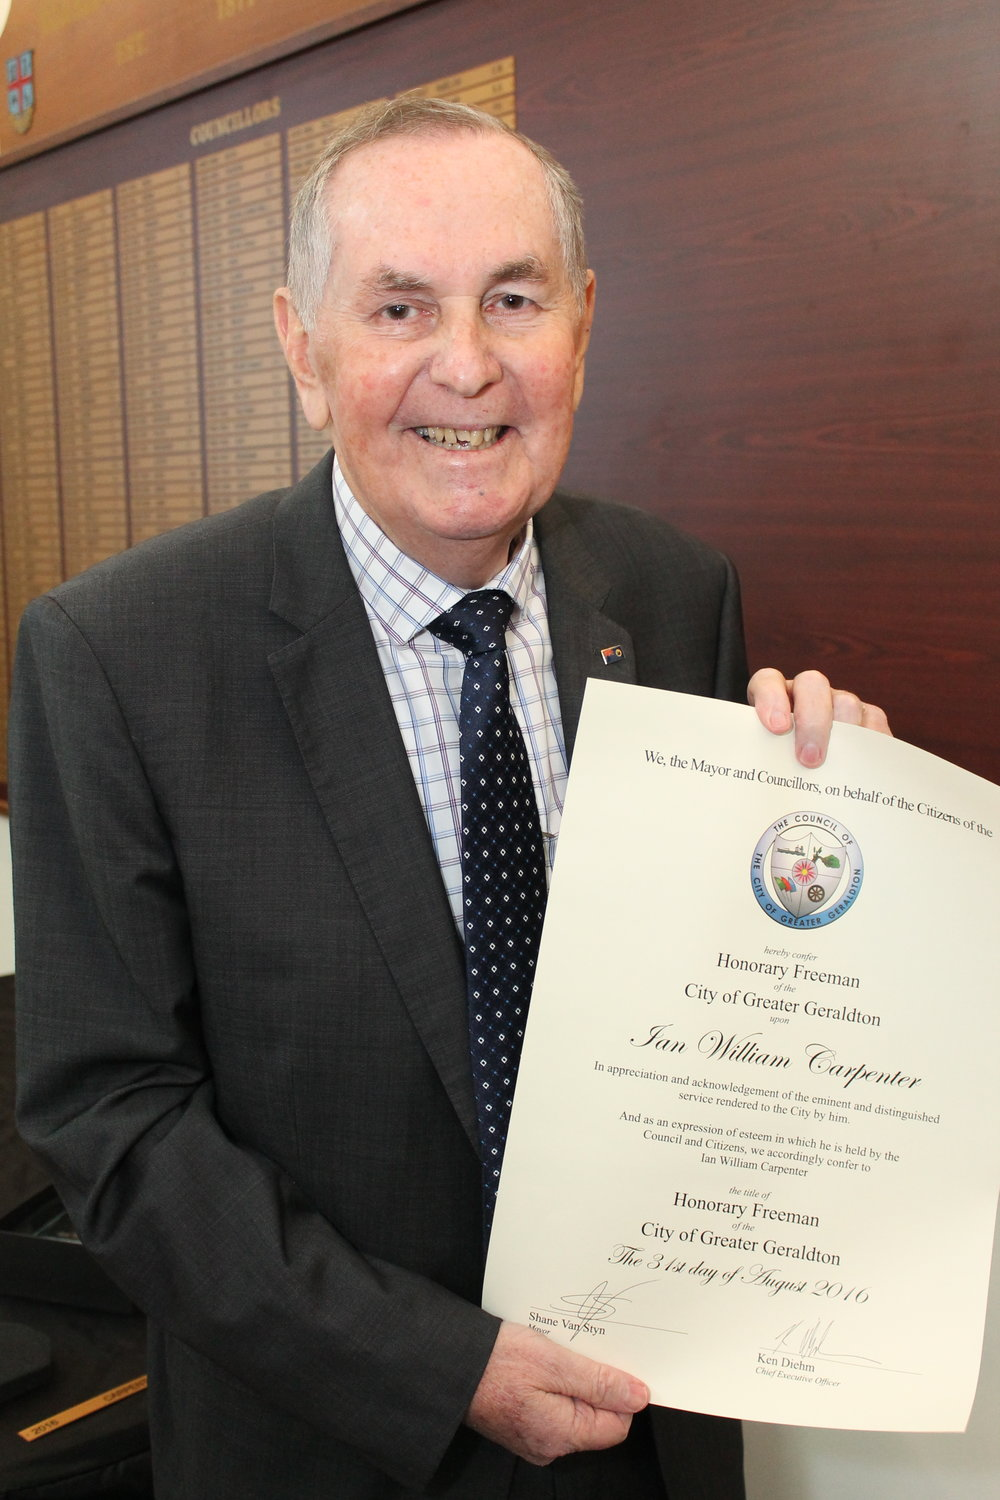 Mr Ian Carpenter has been named an Honorary Freeman of the City of Greater Geraldton.